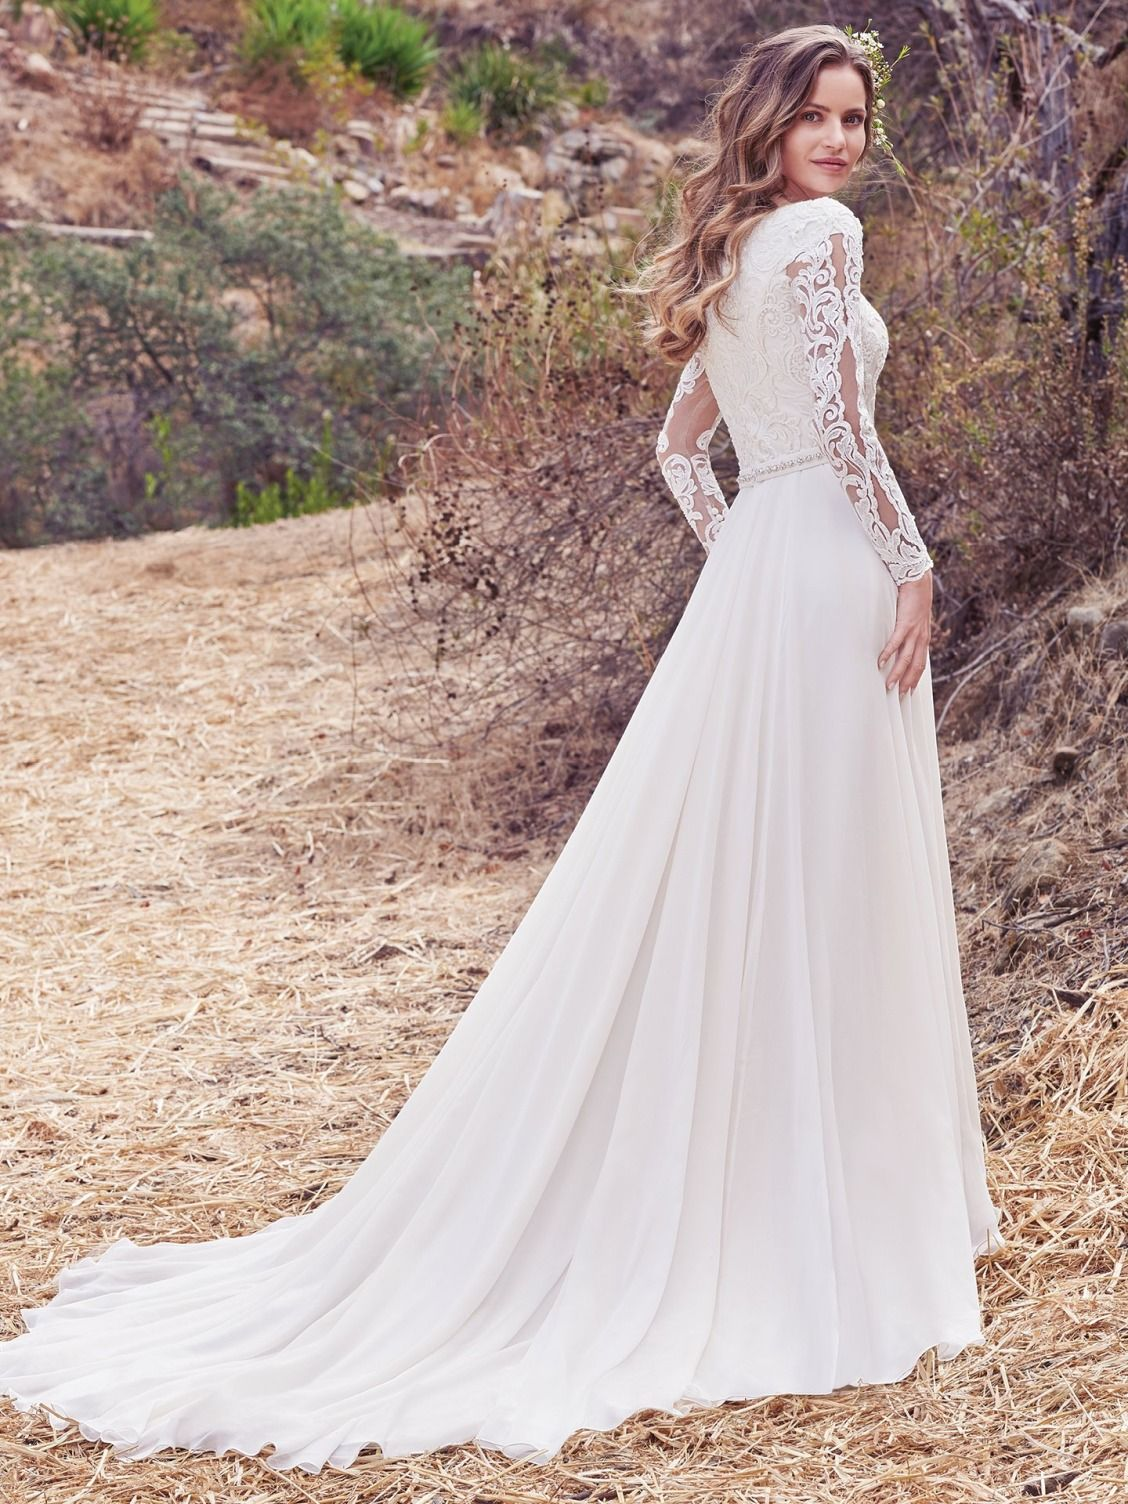 1e601f486e55 Maggie Sottero - DARCY MARIE, This Aurora Chiffon A-line wedding dress  features a lace bodice with illusion long-sleeves, accented in lace  appliqués, ...